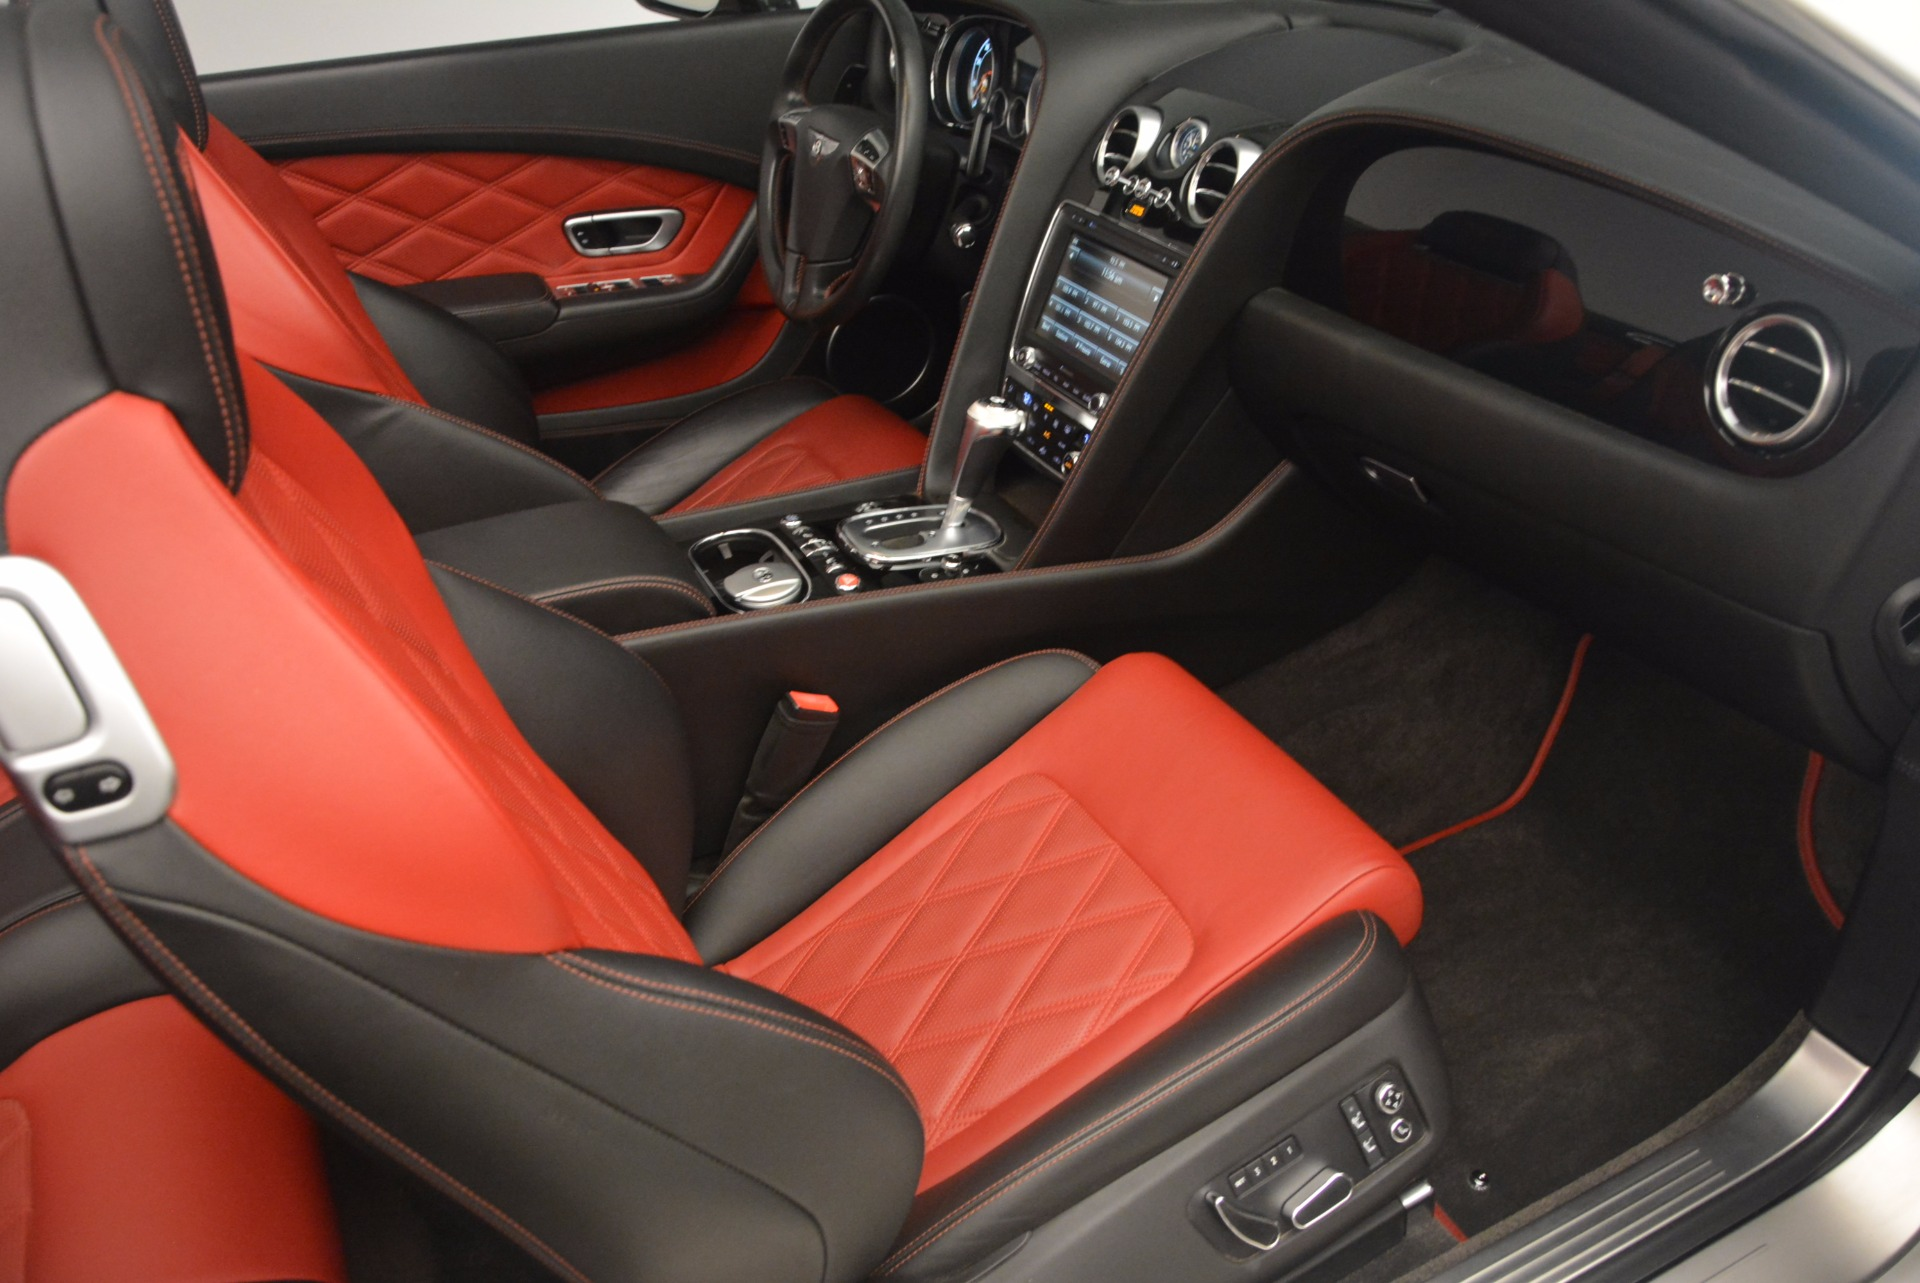 Used 2013 Bentley Continental GT V8 For Sale In Westport, CT 1174_p50